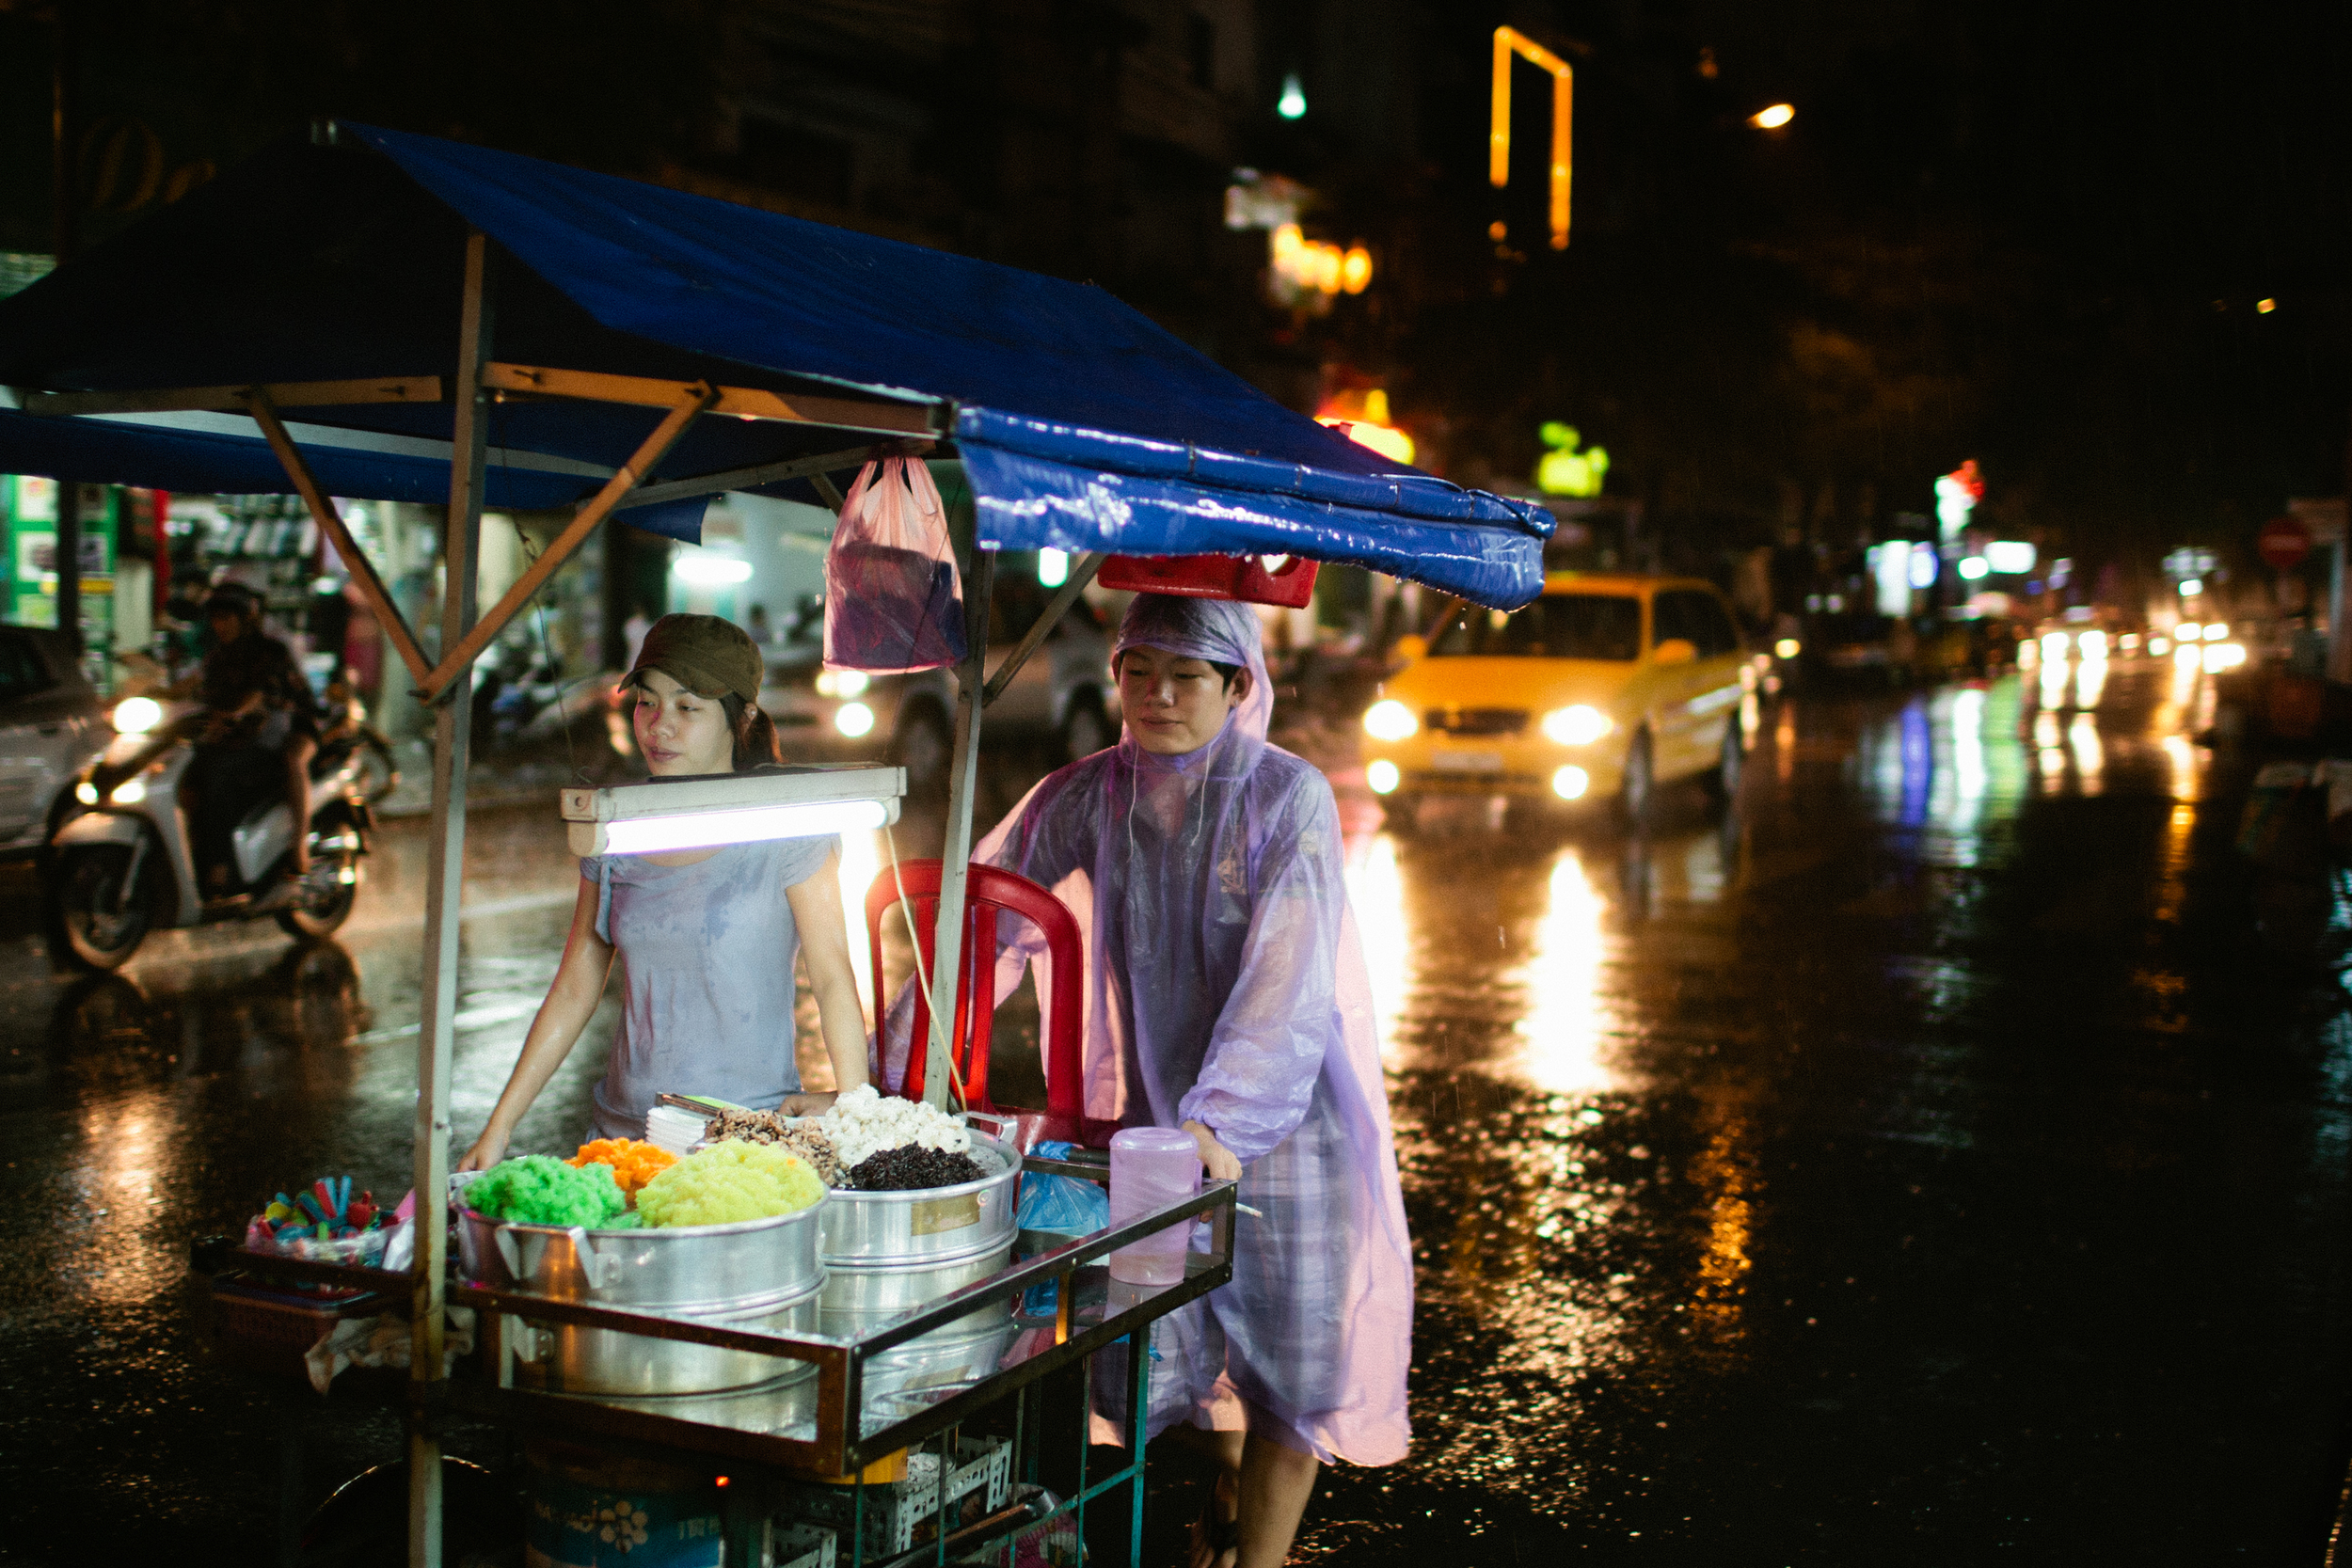 A rainy stroll around HCMC in Vietnam.